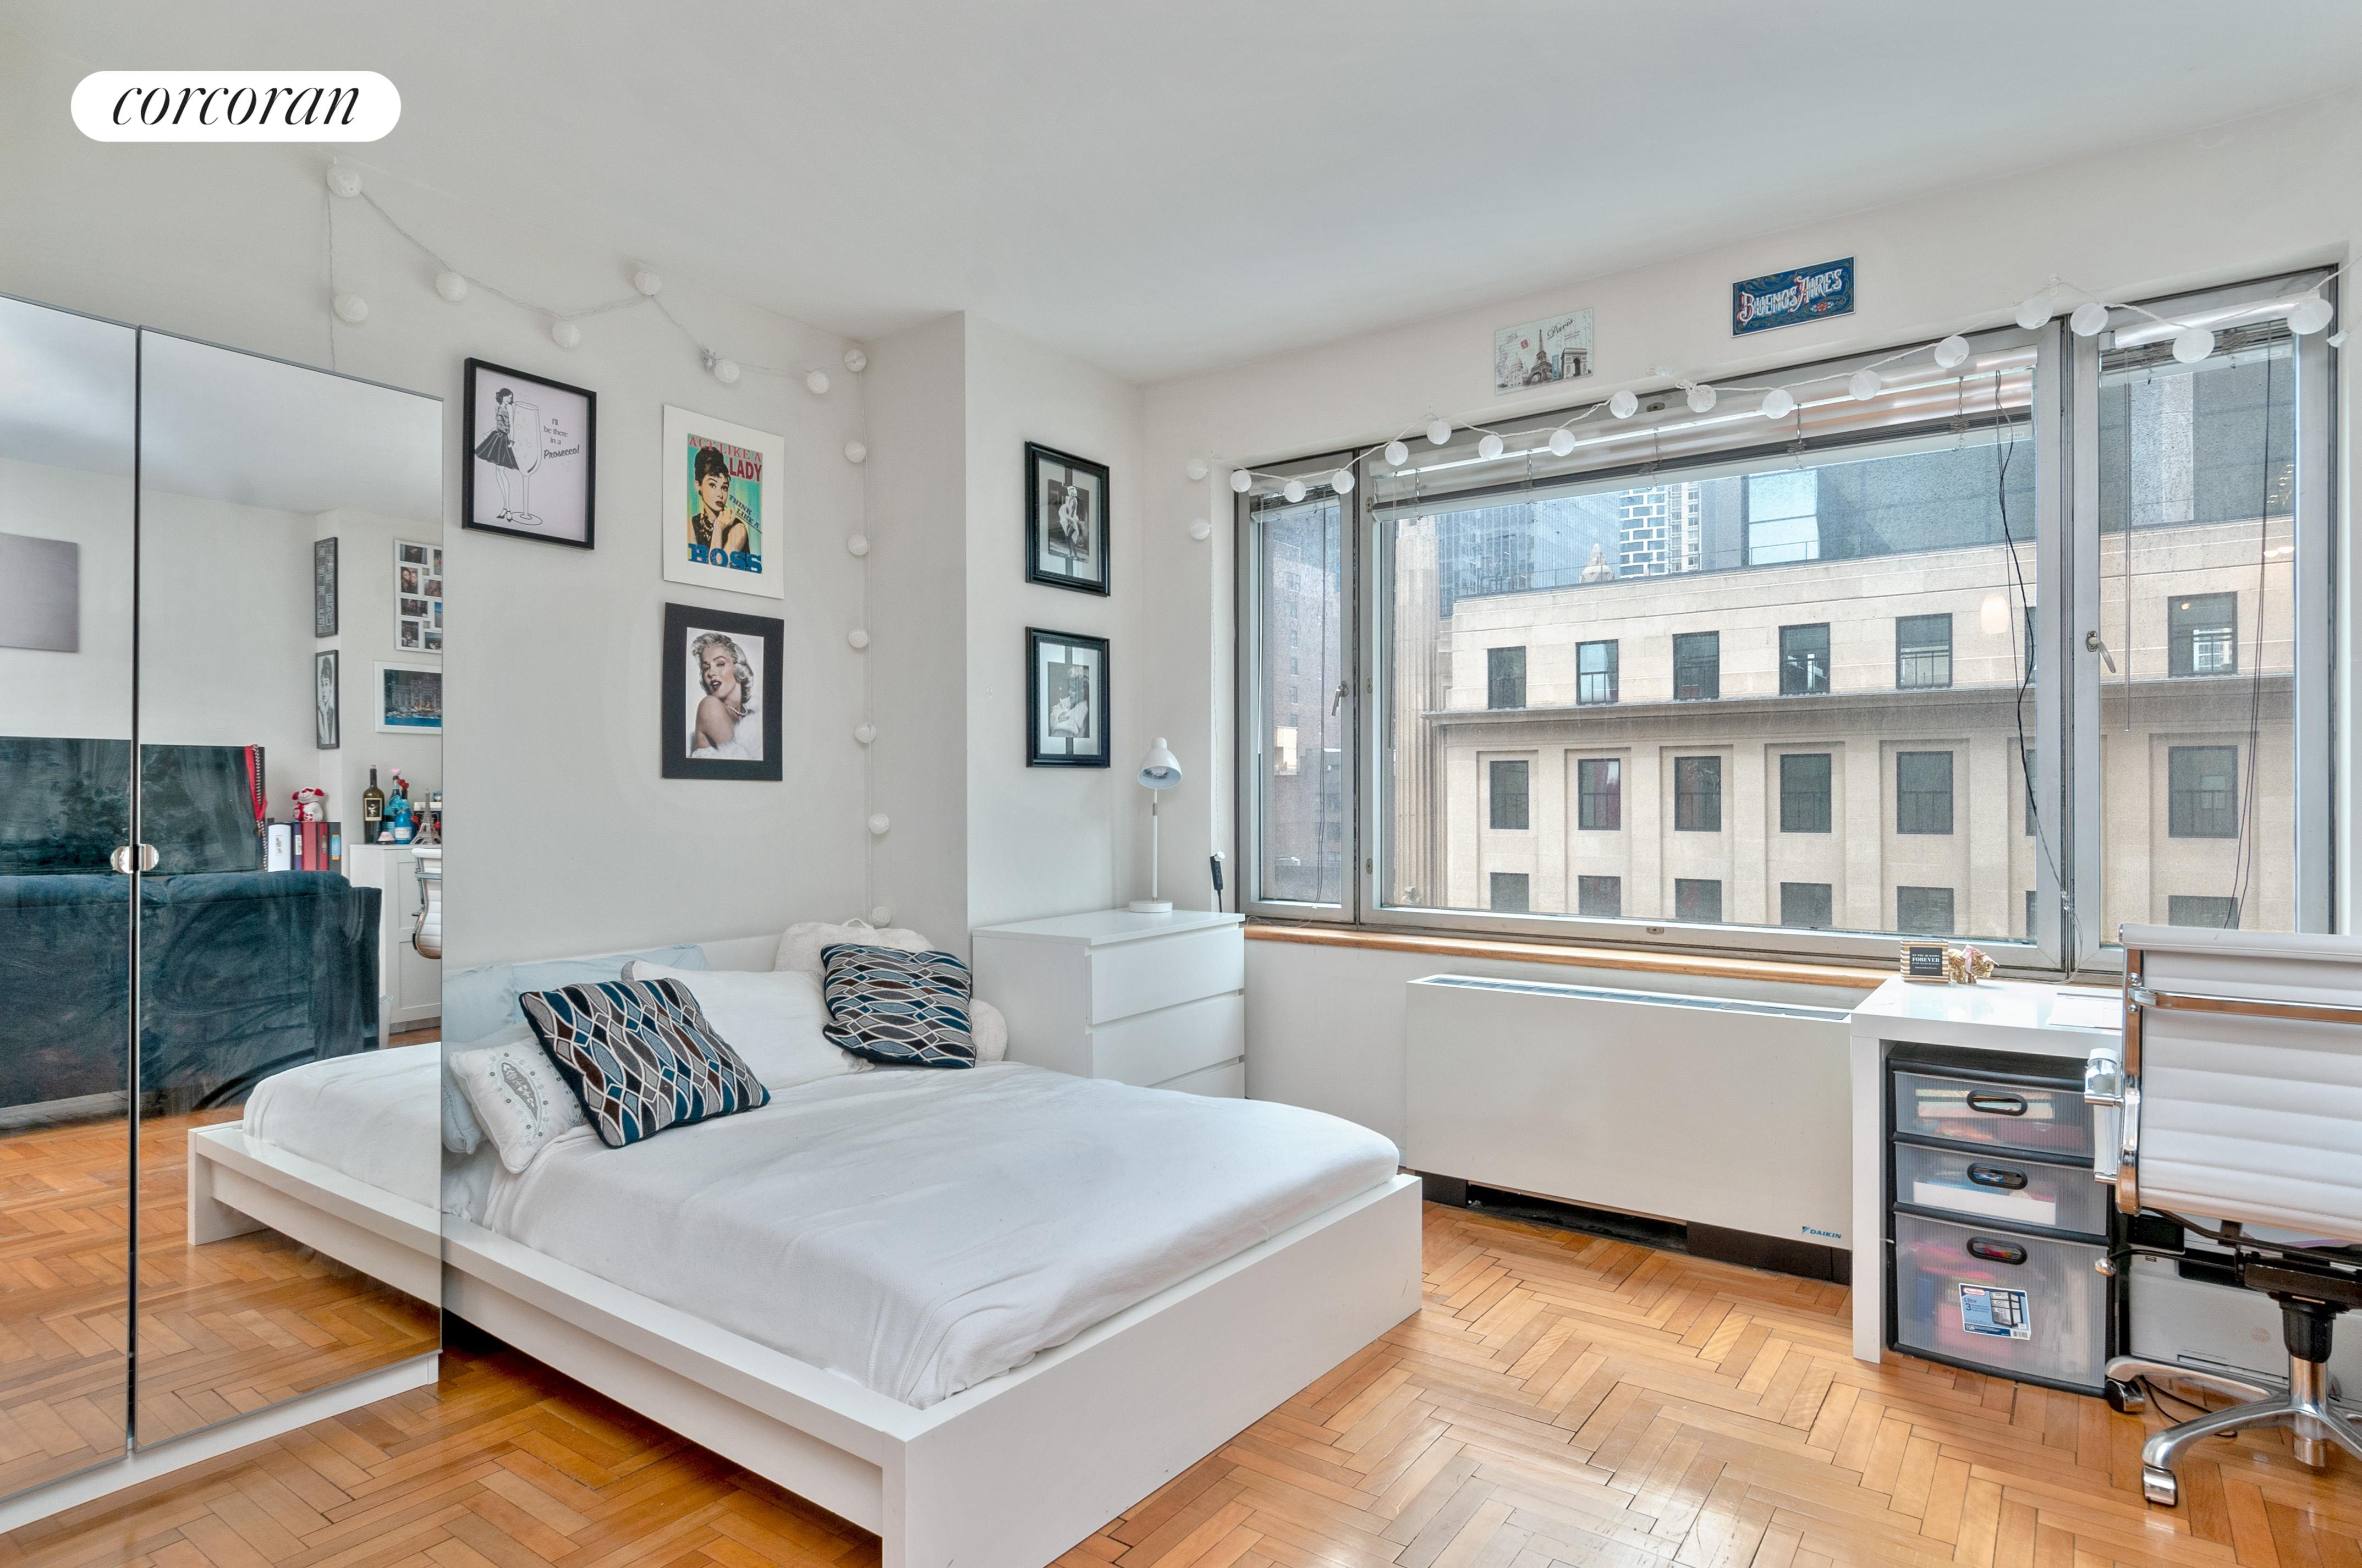 Bright South facing space available Unfurnished or Furnished! Cheerful Studio in a Full Service Condo. Updated Space that features Open Southern Exposure through an Oversized window, Renovated Kitchen with Stainless Steel Appliances including a Microwave and Dishwasher, Tons of Storage/Closet Space, Updated Bath, and Hardwood Floors. Guarantors Ok. Sorry, no pets.Amazing Columbus Circle location with Central Park just outside your door! Stroll to Lincoln Center, Rockefeller Center, Times Square, Carnegie Hall, Restaurant Row, and much much more. Easy access to all transportation, boutique shopping and fine dining in the Time Warner Center, Whole Foods, the Museum of Modern Art, Radio City Music Hall, and a myriad of activities in Central Park.The Full-Service Building offers all one could require in a primary or secondary residence. 24 Hour Doorman, Concierge, Fully equipped Gym, Yoga/Pilates Room, Punching & Speed Bags, Swimming Pool, Outdoor Sun-Deck, WiFi enabled Lounge, and Laundry. The building even has guest rooms available for rent for visiting family or friends!